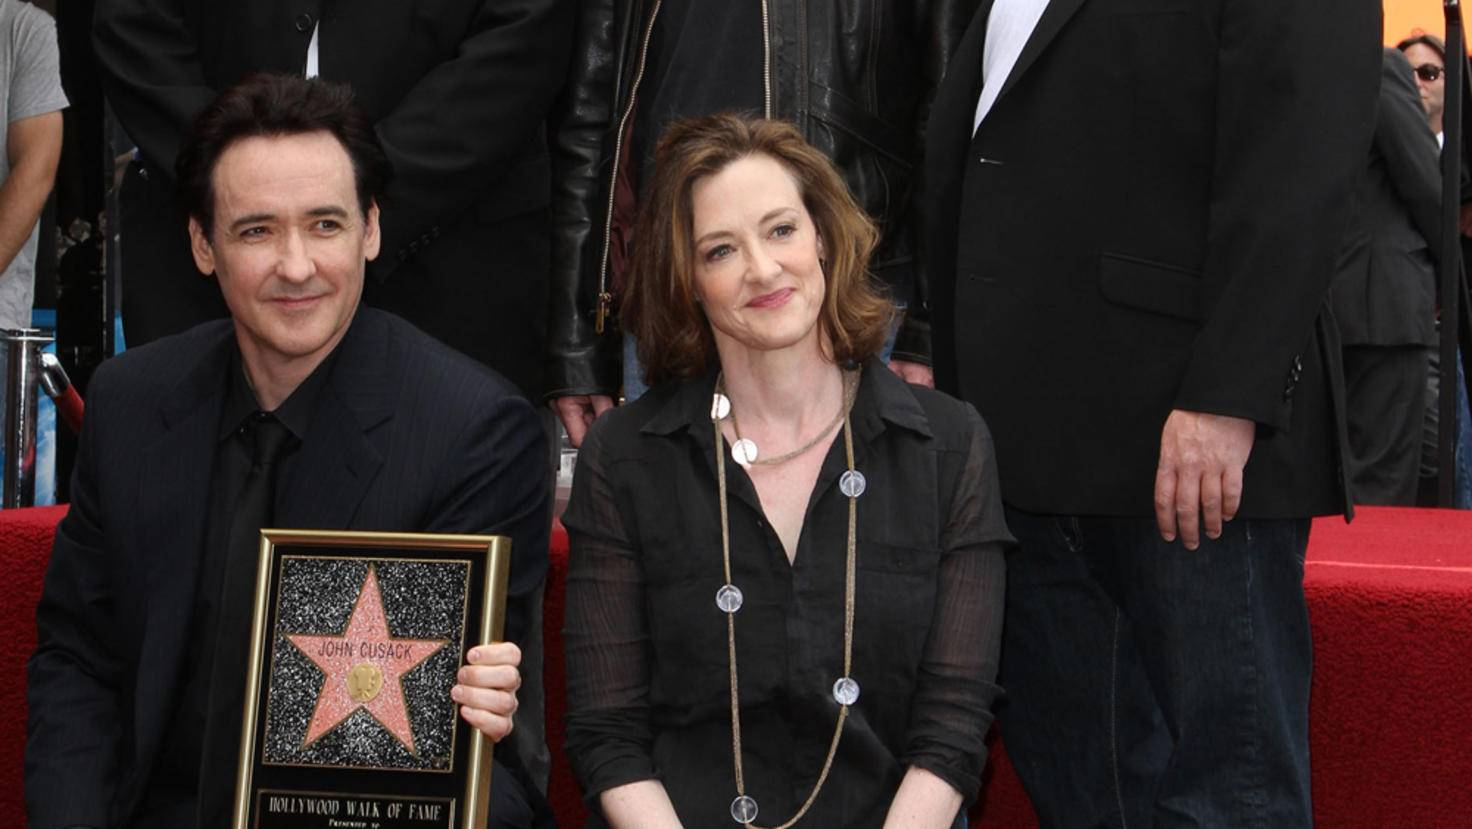 John Cusack_Joan Cusack_picture alliance AdMedia_31034805